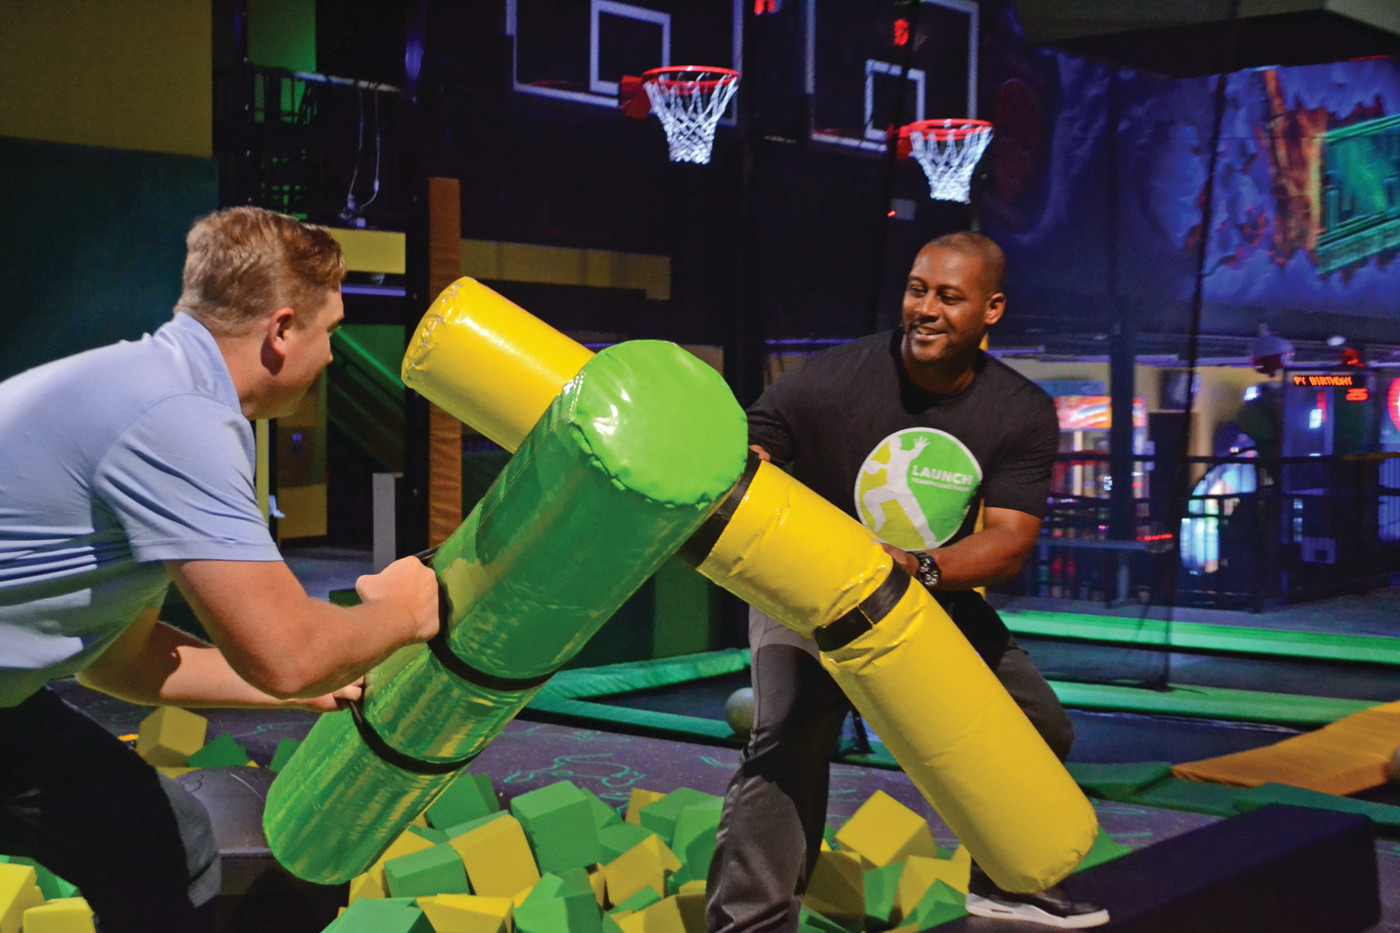 FRIENDLY COMPETITION: Launch owners Ty Law and Rob Arnold had a friendly sparring match with pillow batons over the top of a foam pit on Tuesday during an interview at the Warwick Launch Trampoline Park.